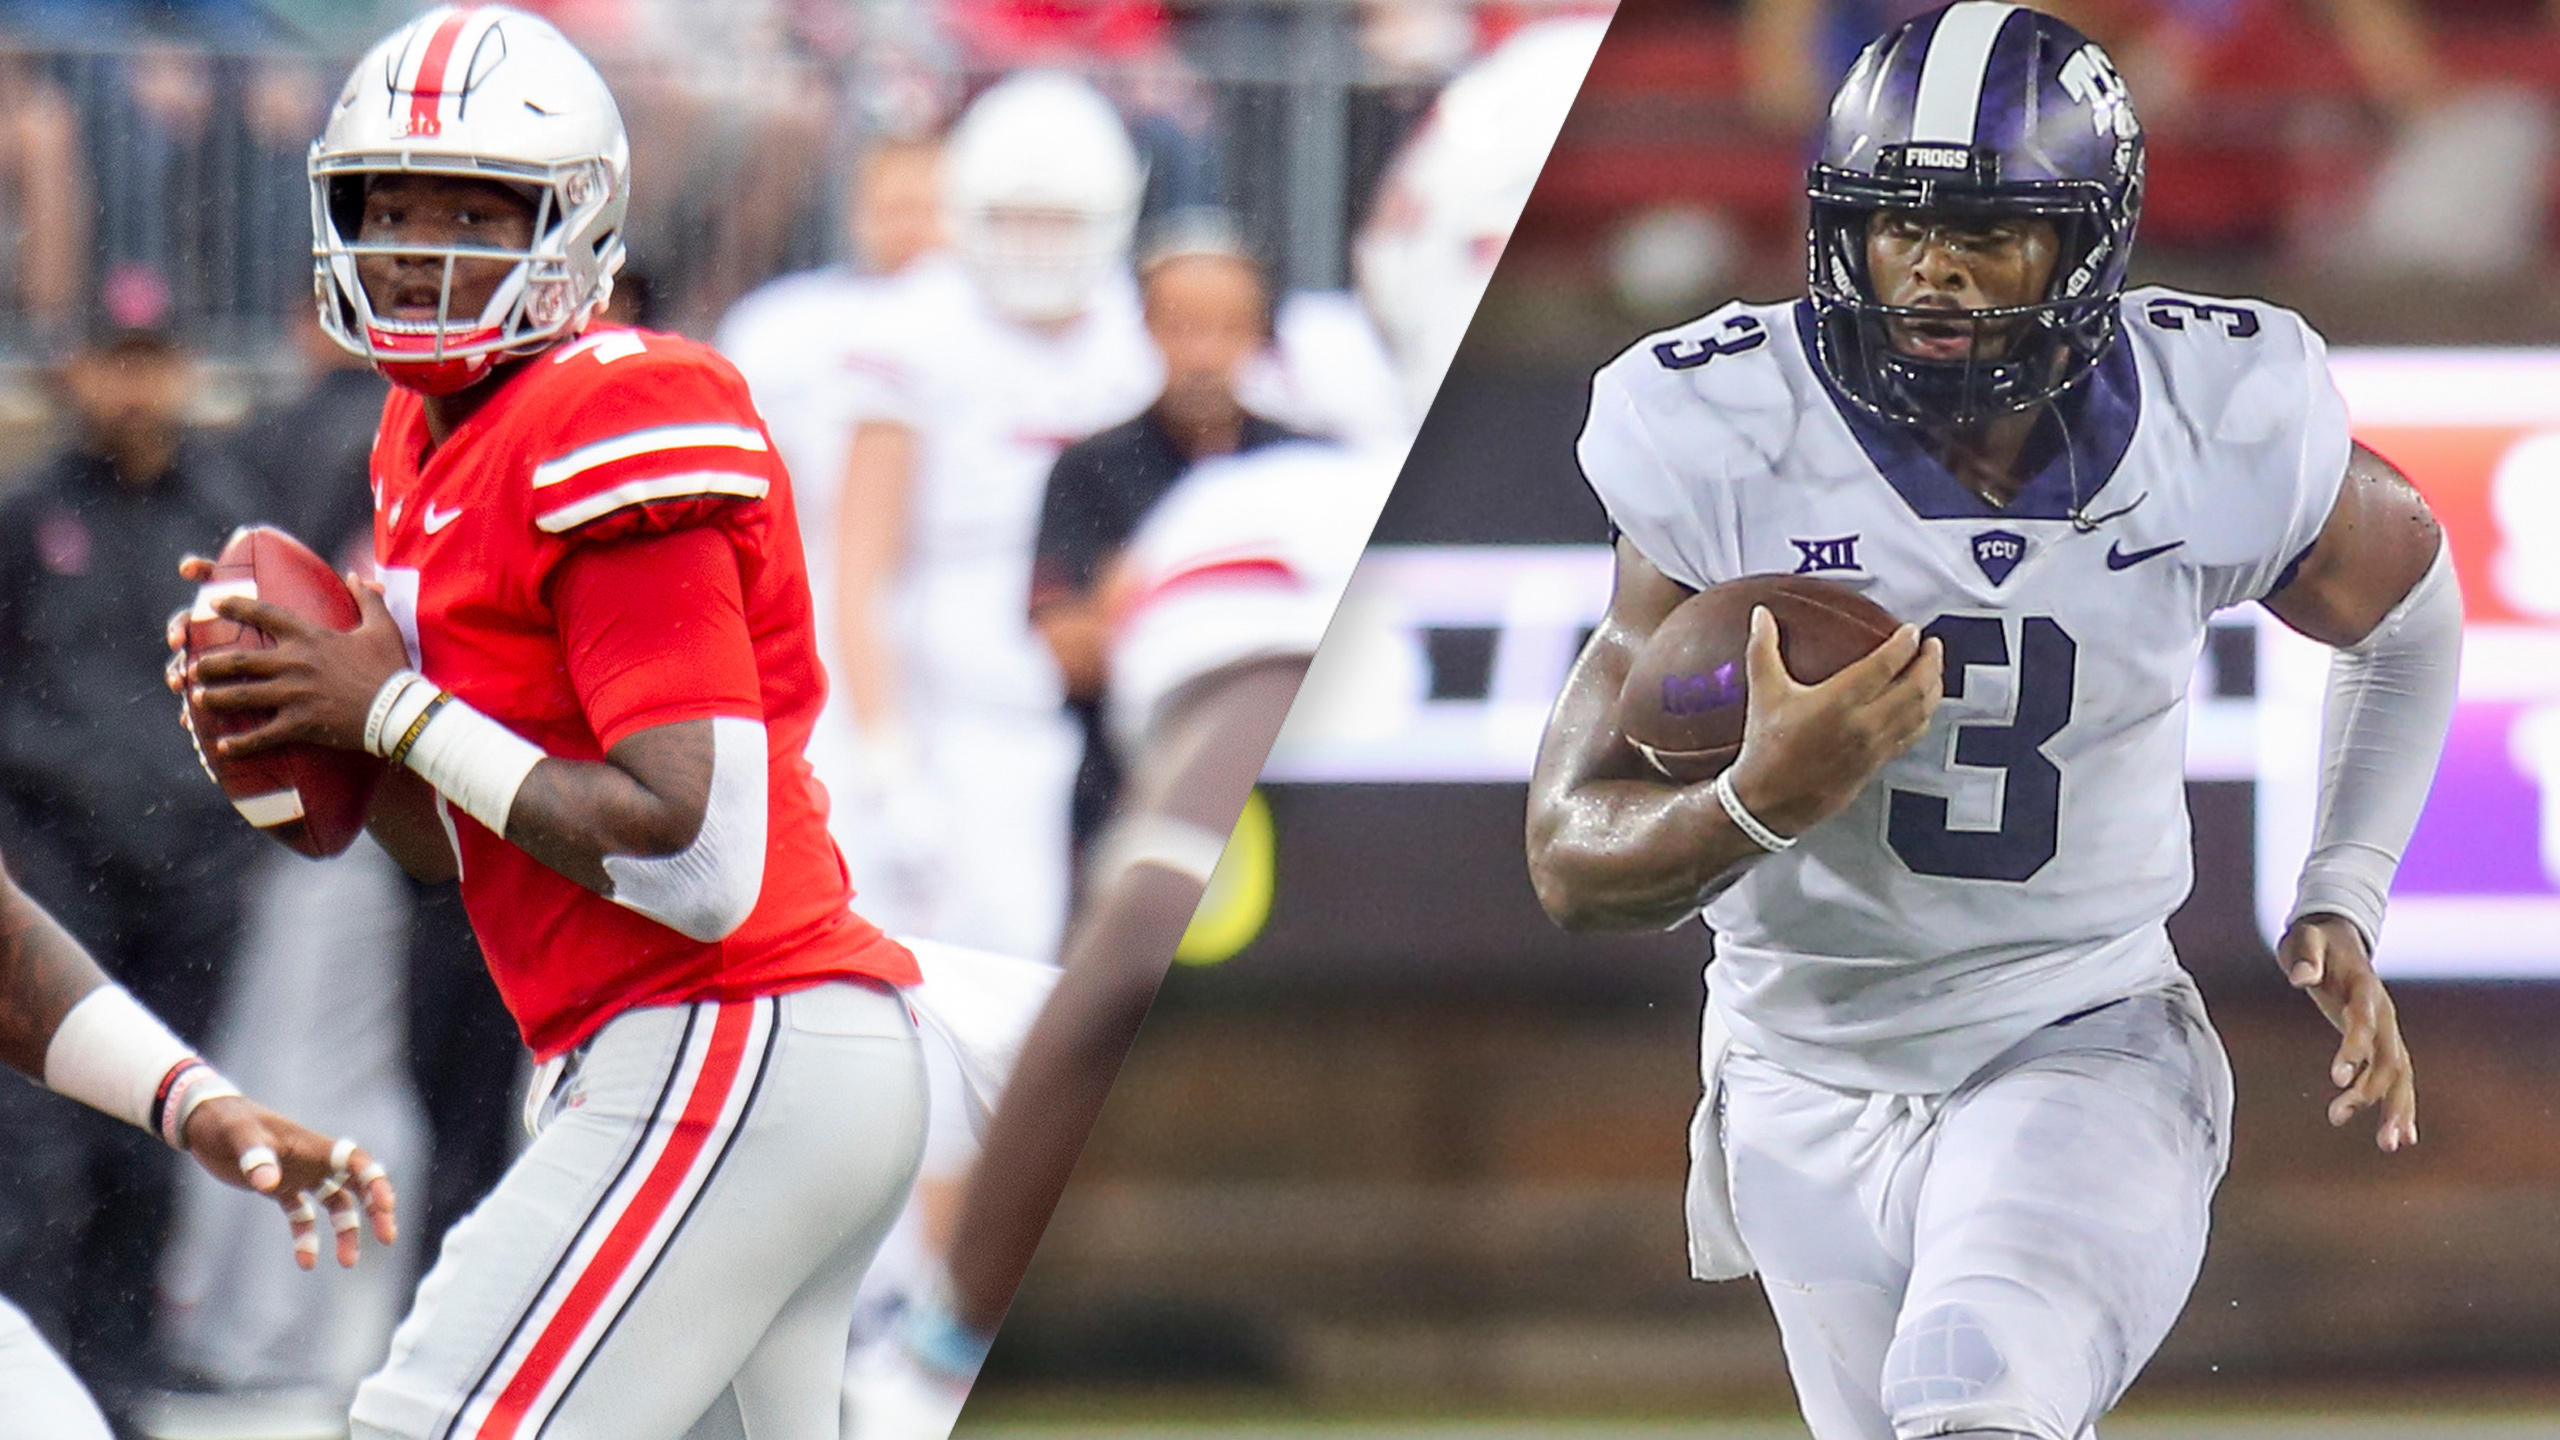 #4 Ohio State vs. #15 TCU (Football) (re-air)